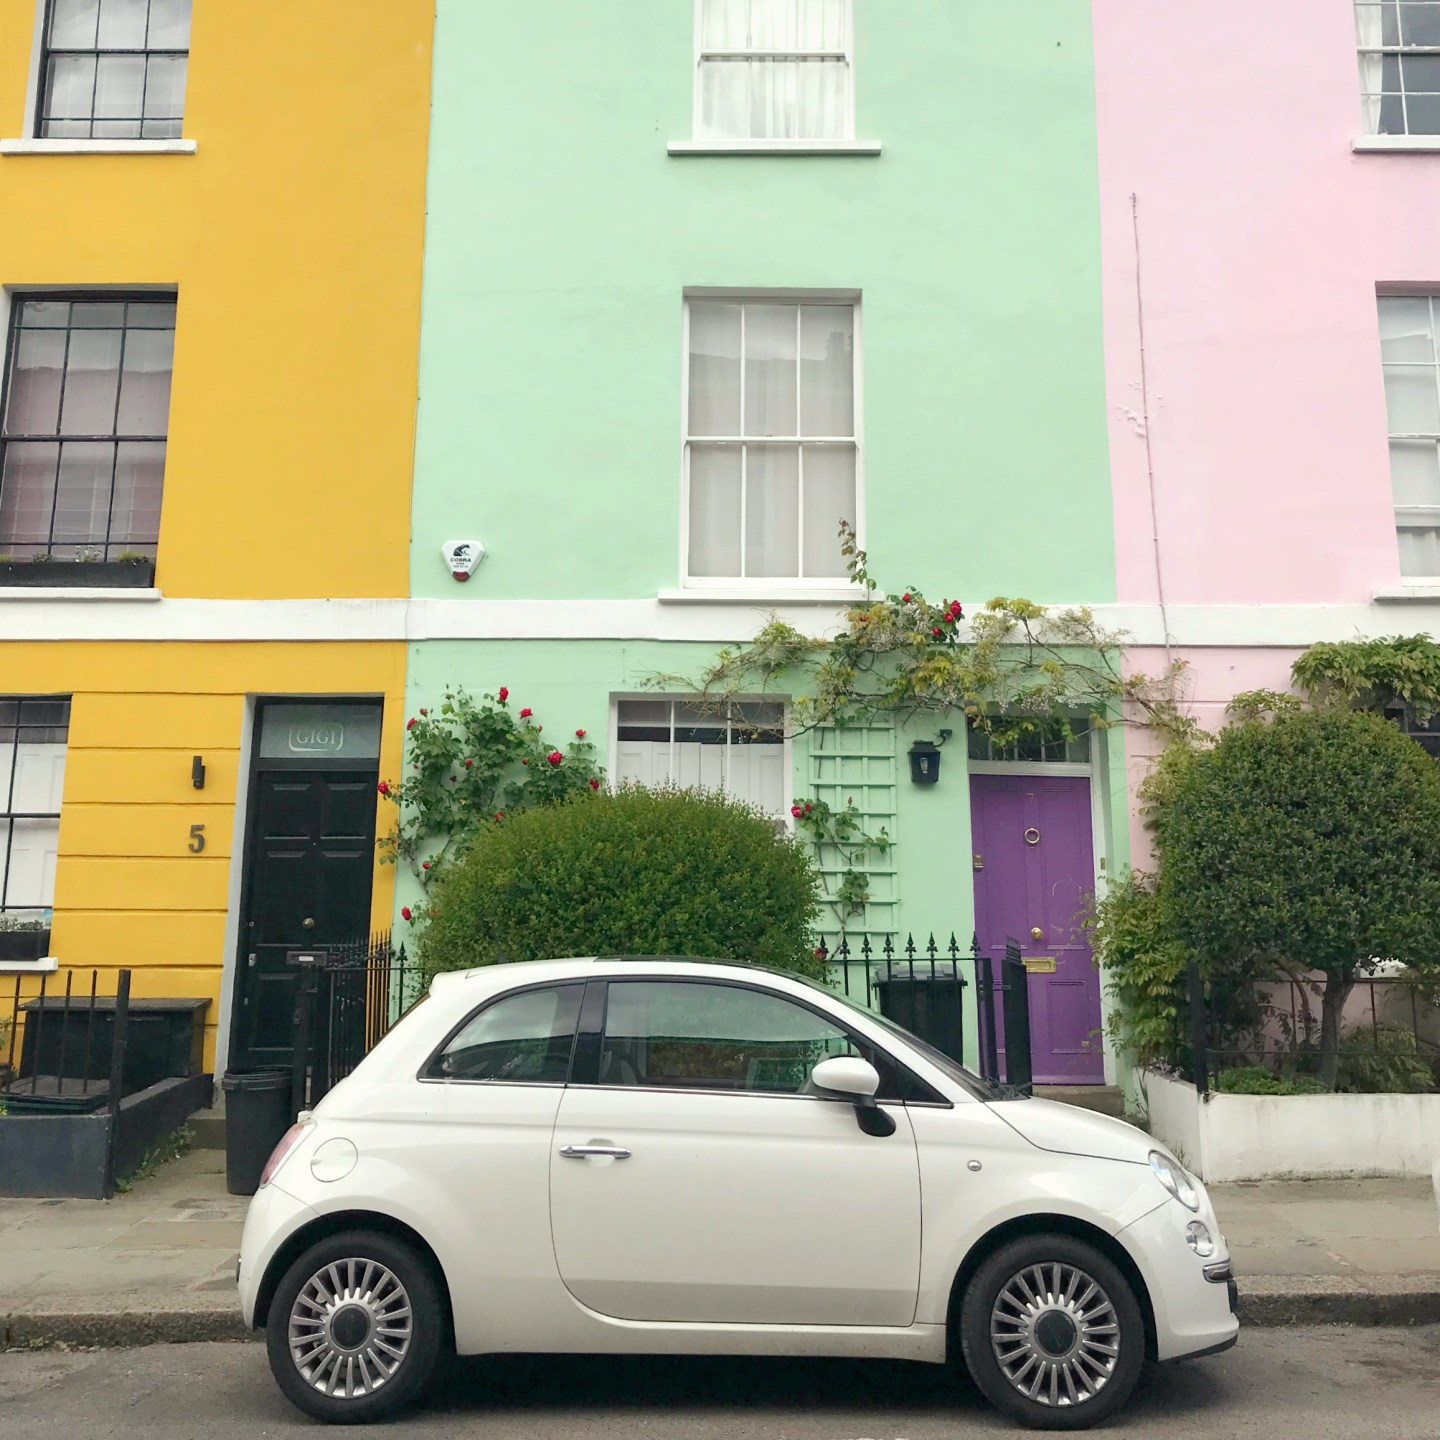 10 Colourful Streets in London to Take Instagram Pictures | Falkland Street